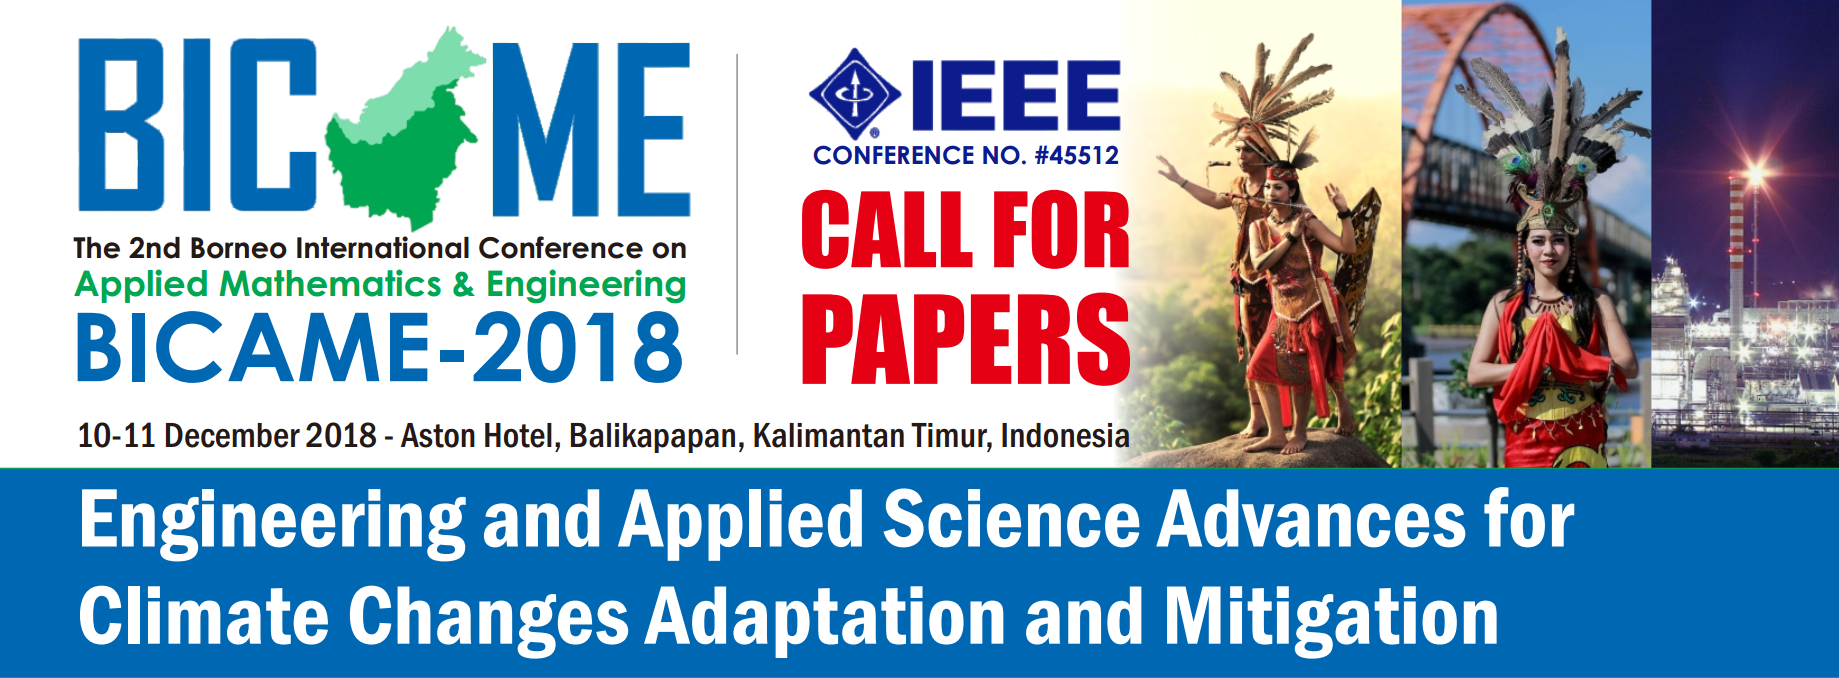 BICAME 2018 – 2nd Borneo International Conference on Applied